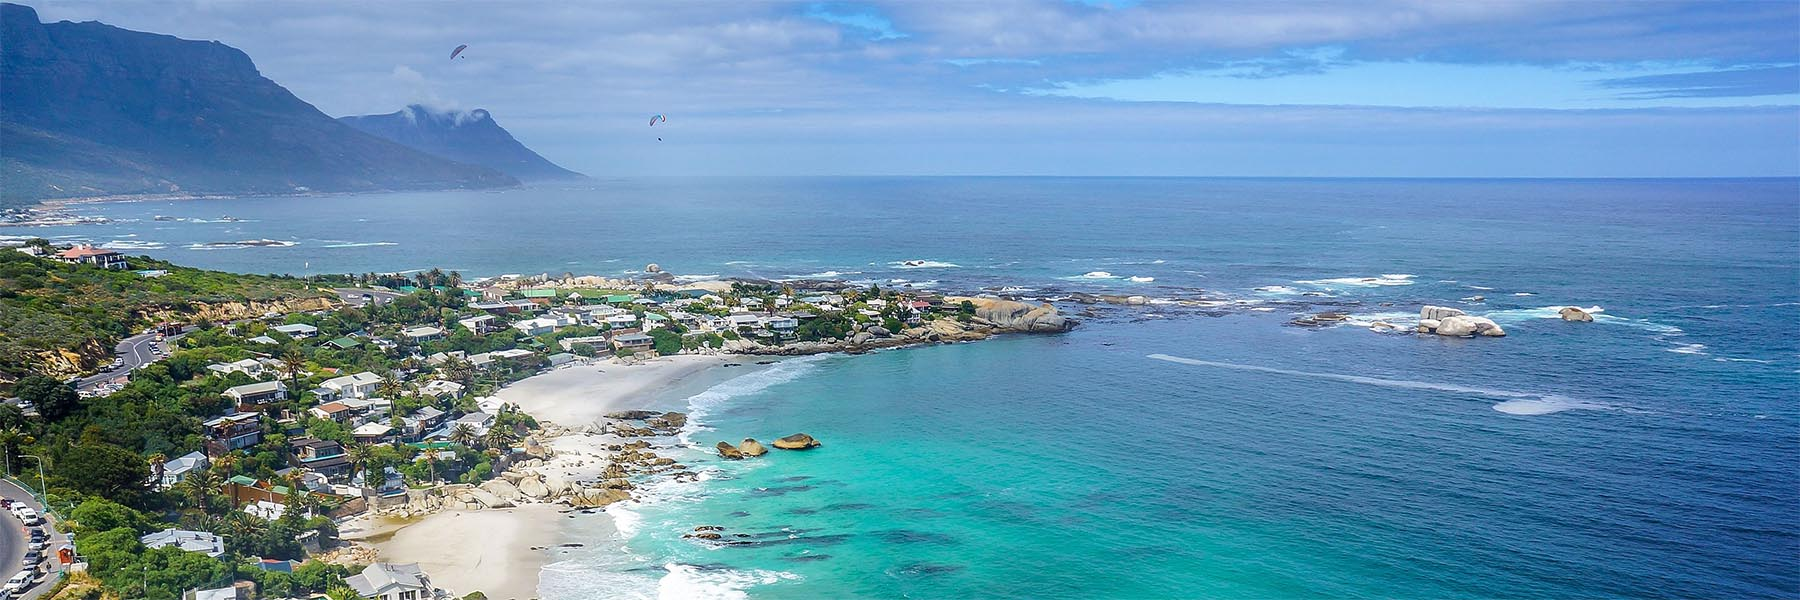 Best beaches of South Africa